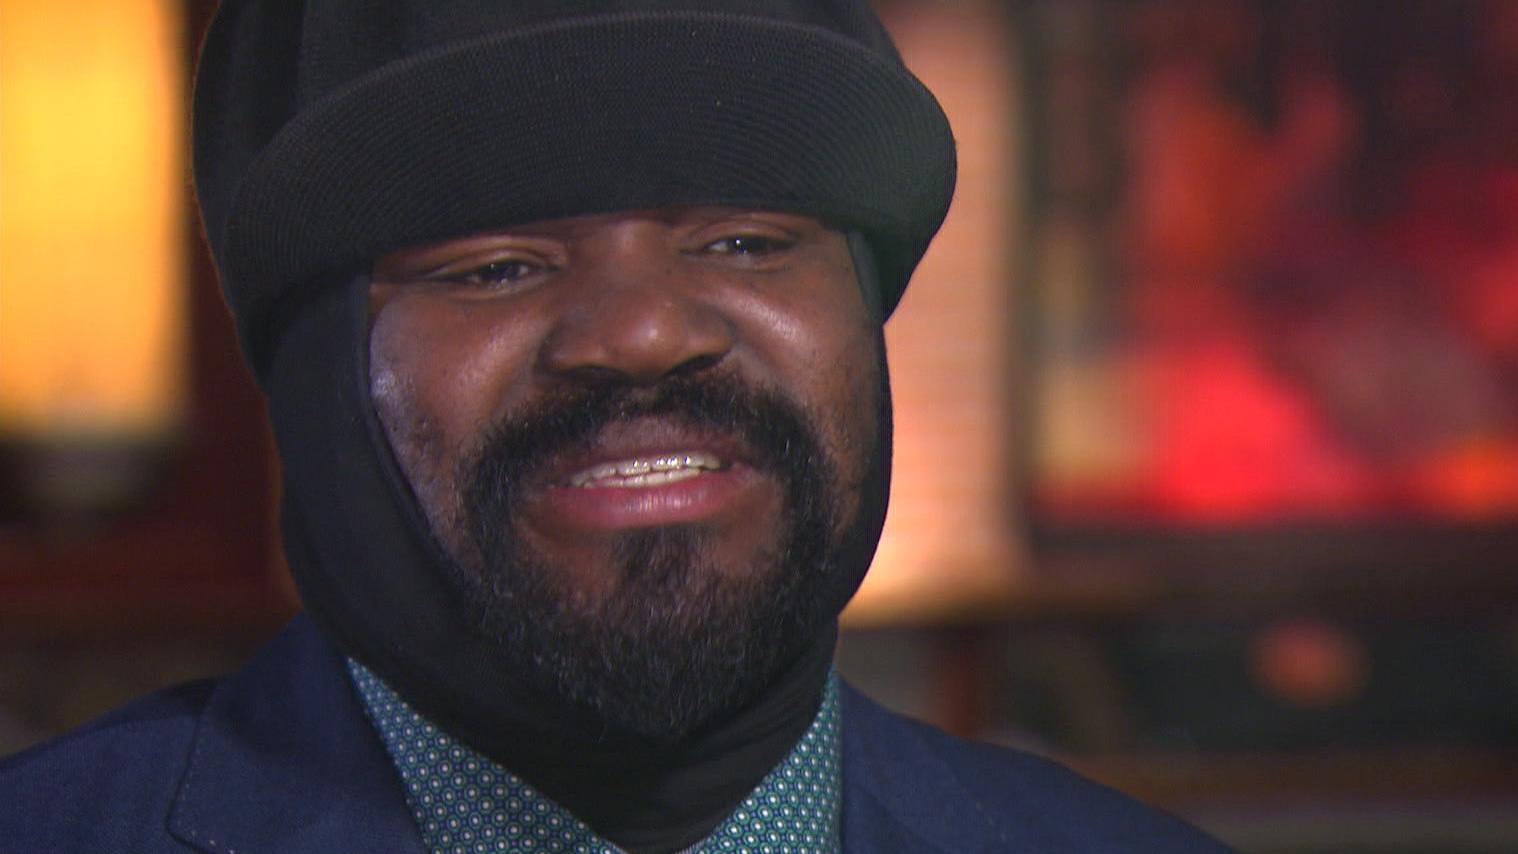 Le Meilleur Grammy Winning Jazz Singer Gregory Porter On Music Ce Mois Ci